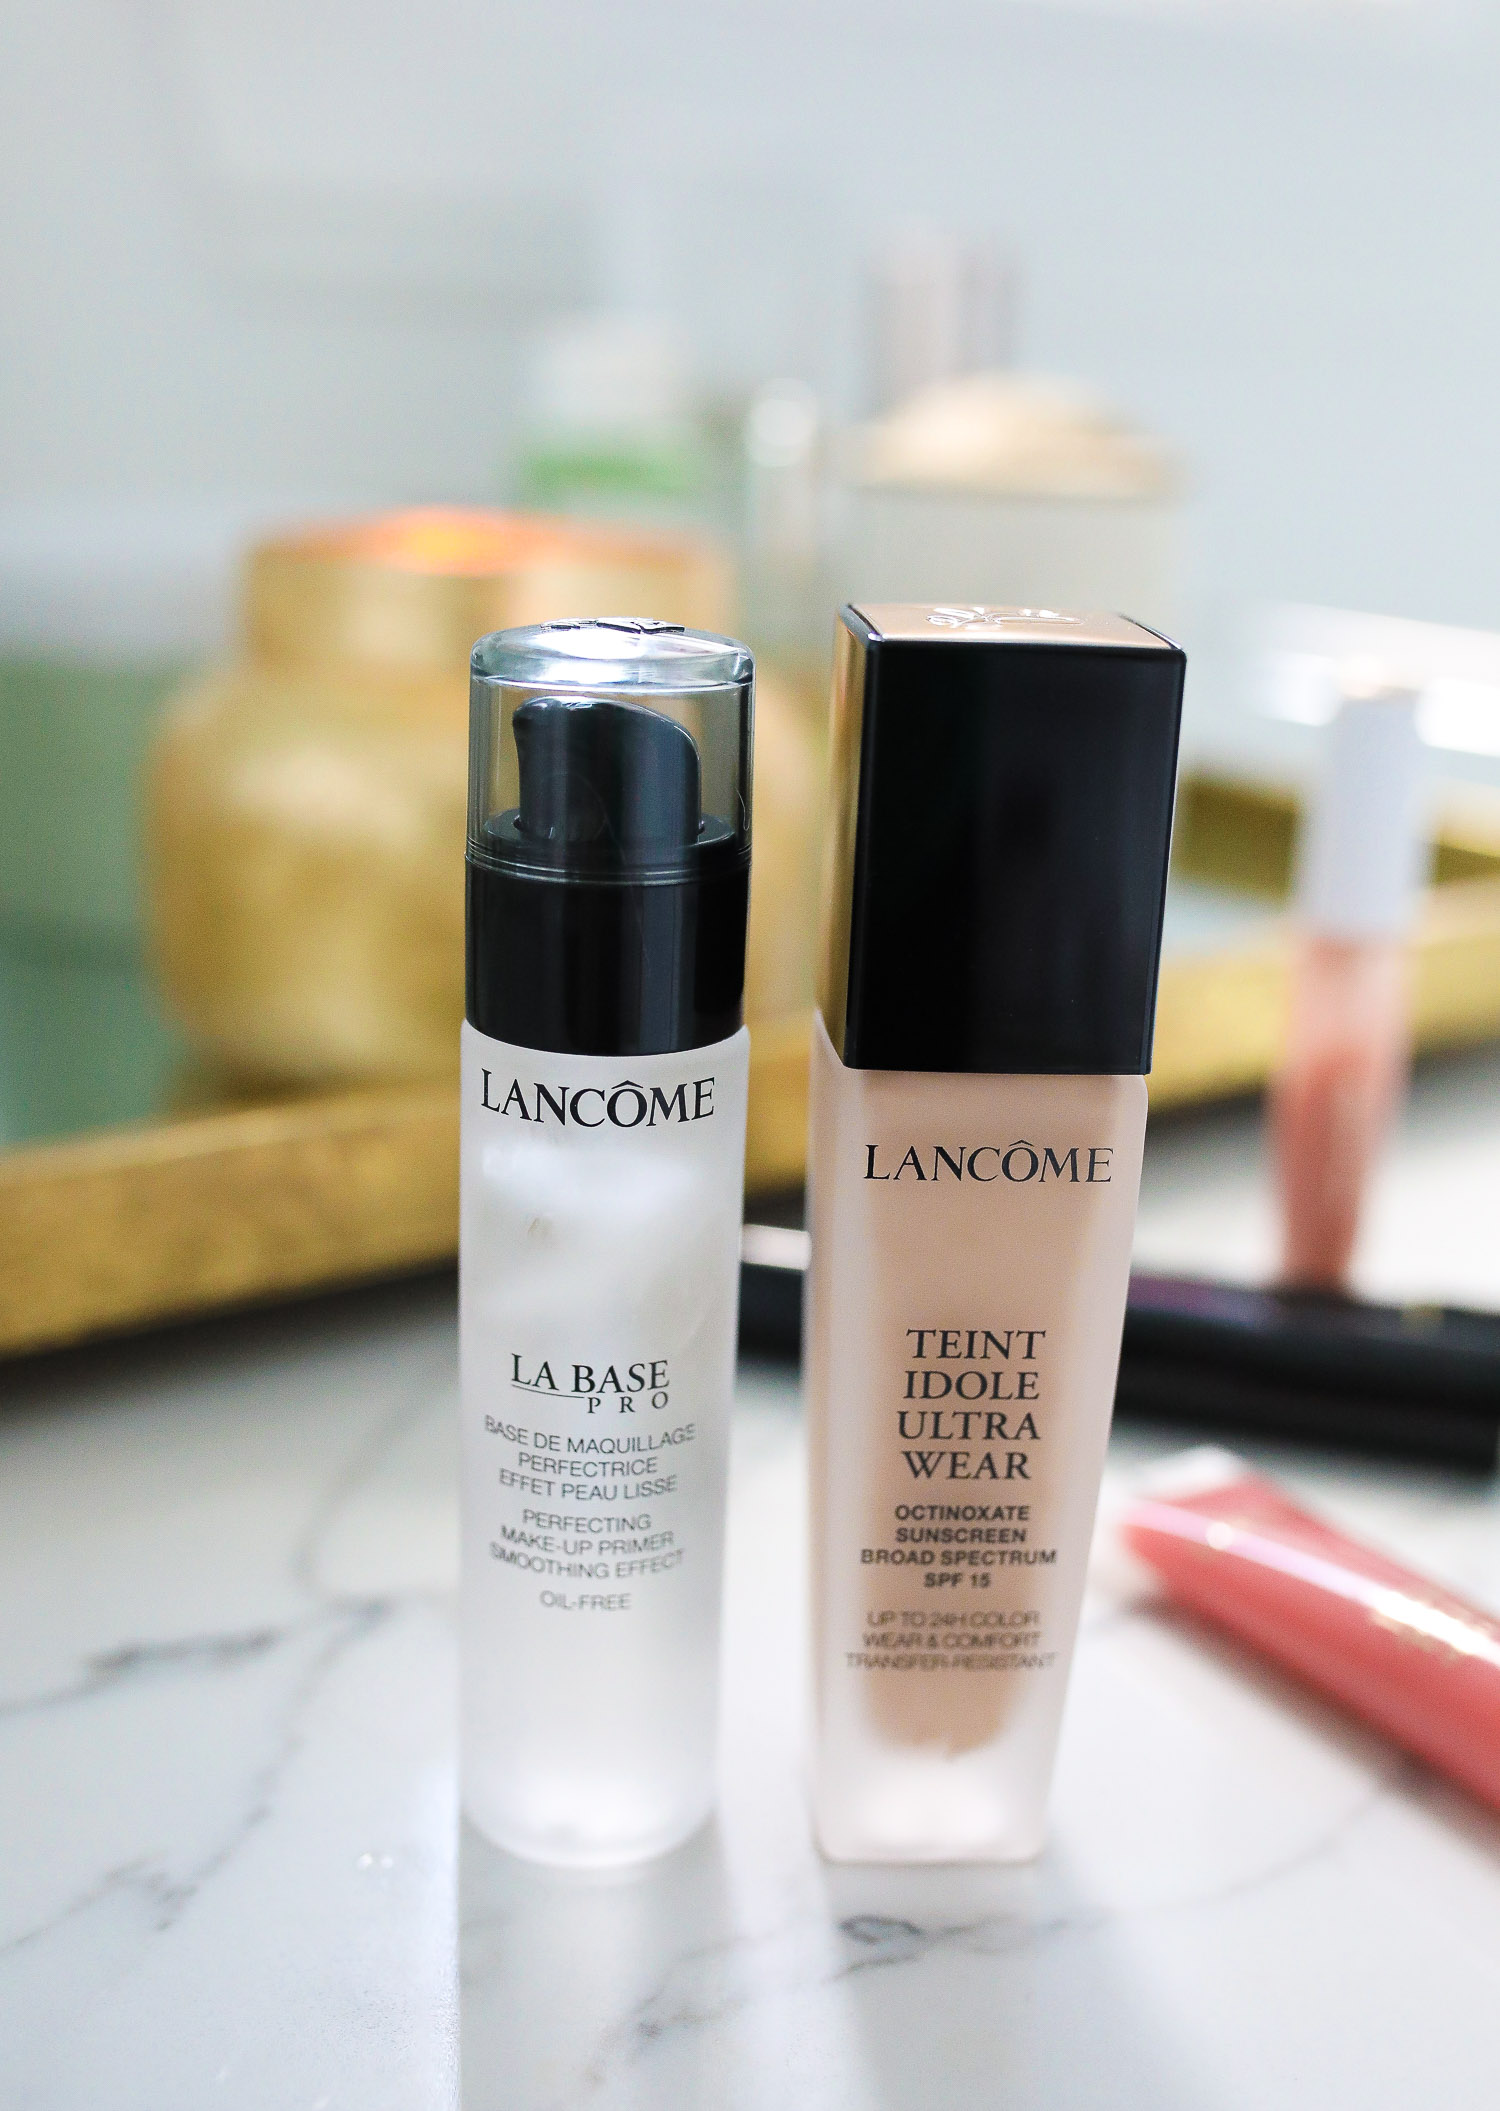 Lancôme Teint Idole Ultra Wear by popular US beauty blog, The Sweetest Thing: image of a bottle of Lancome Teint Idole Ultra Wear foundation next to a bottle of Lancome La Base pro.